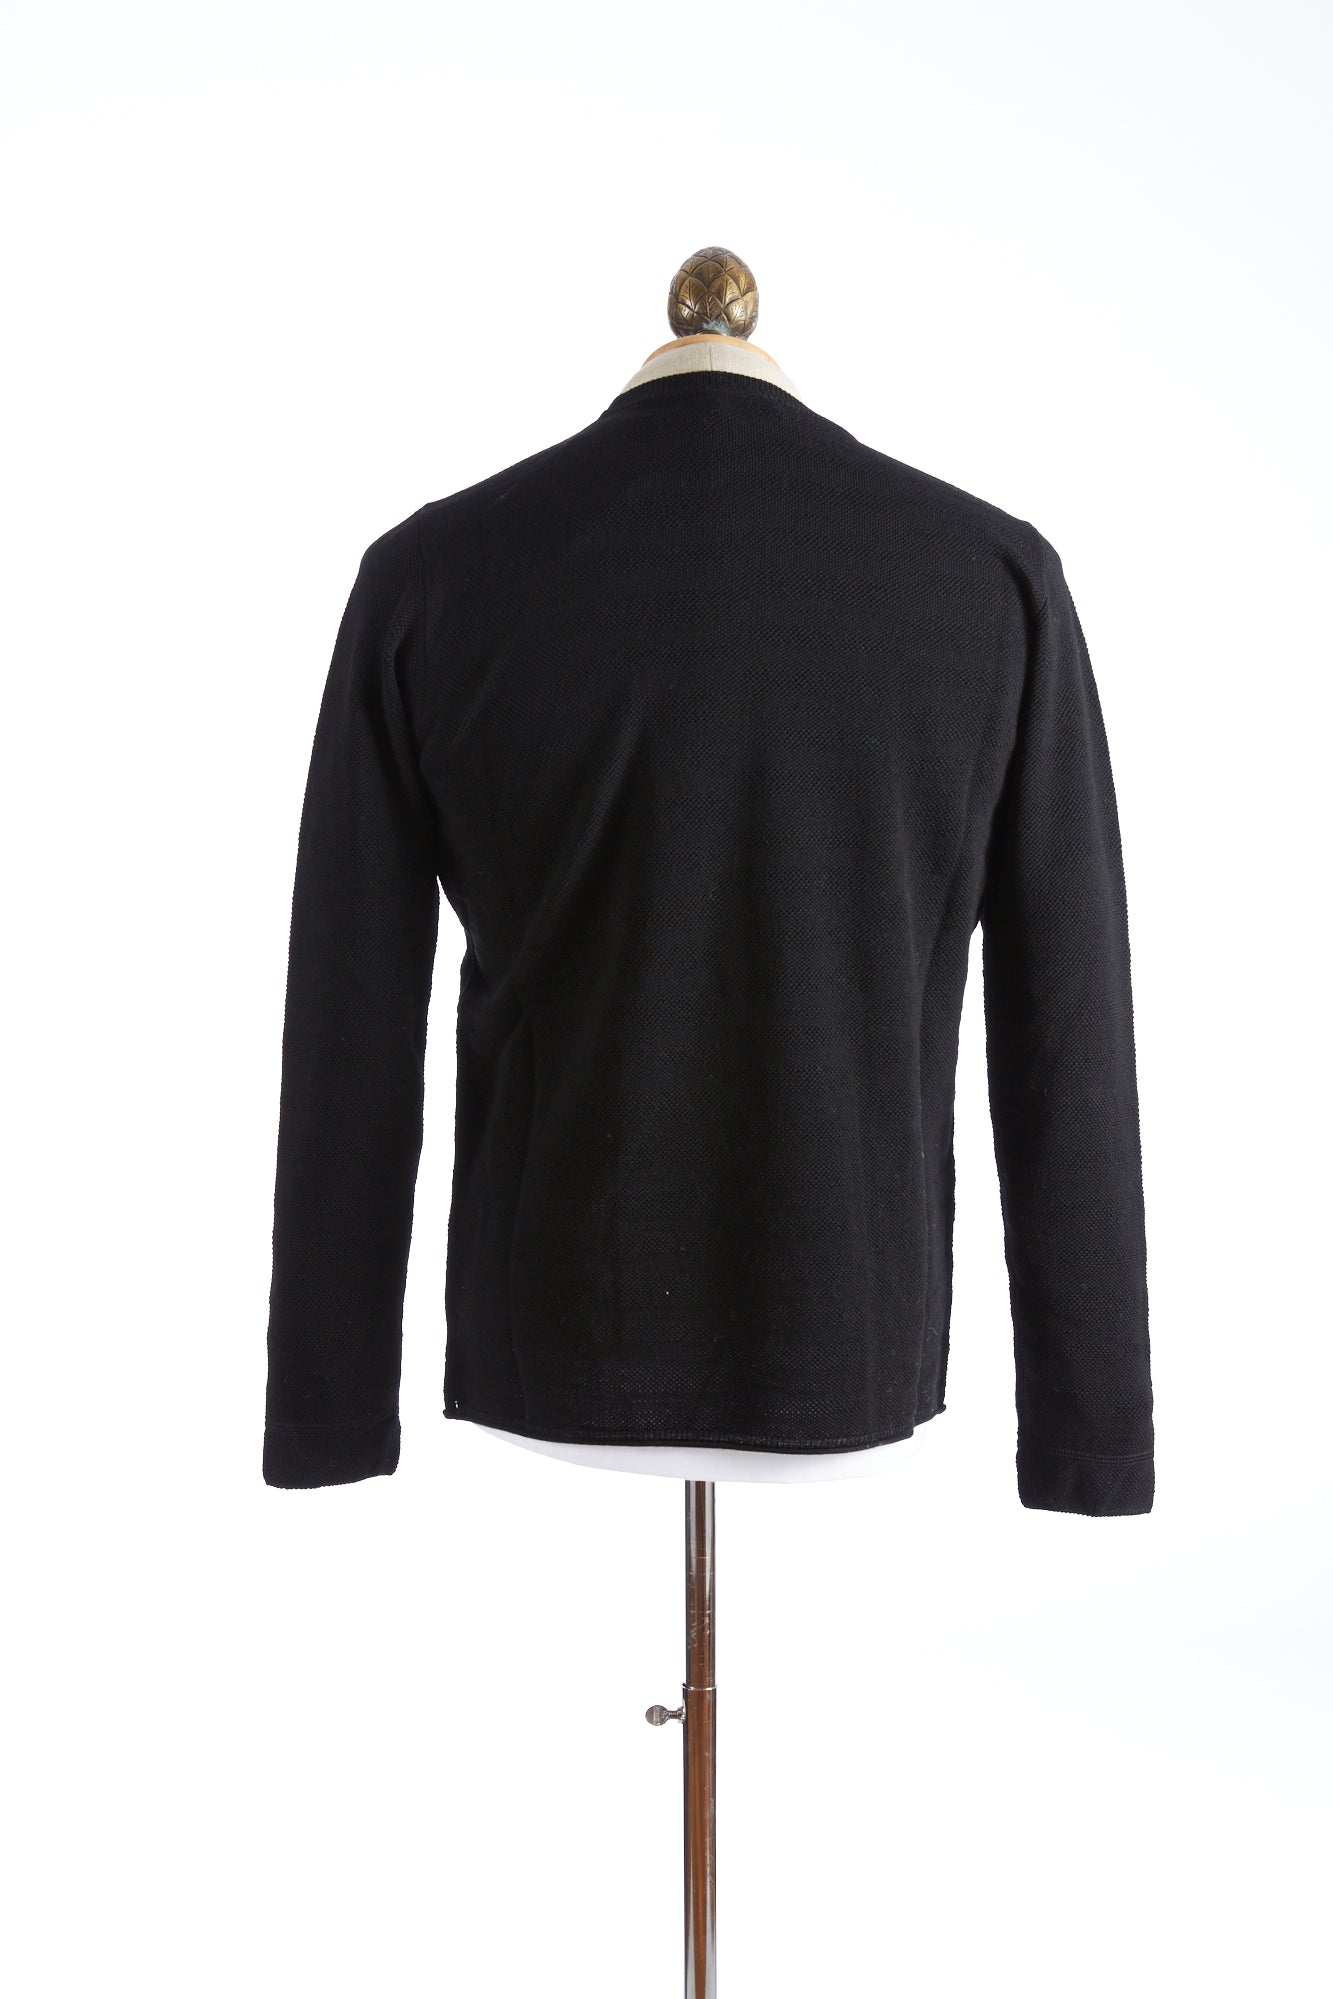 Roberto Collina Black Textured Stripe Sweater Back